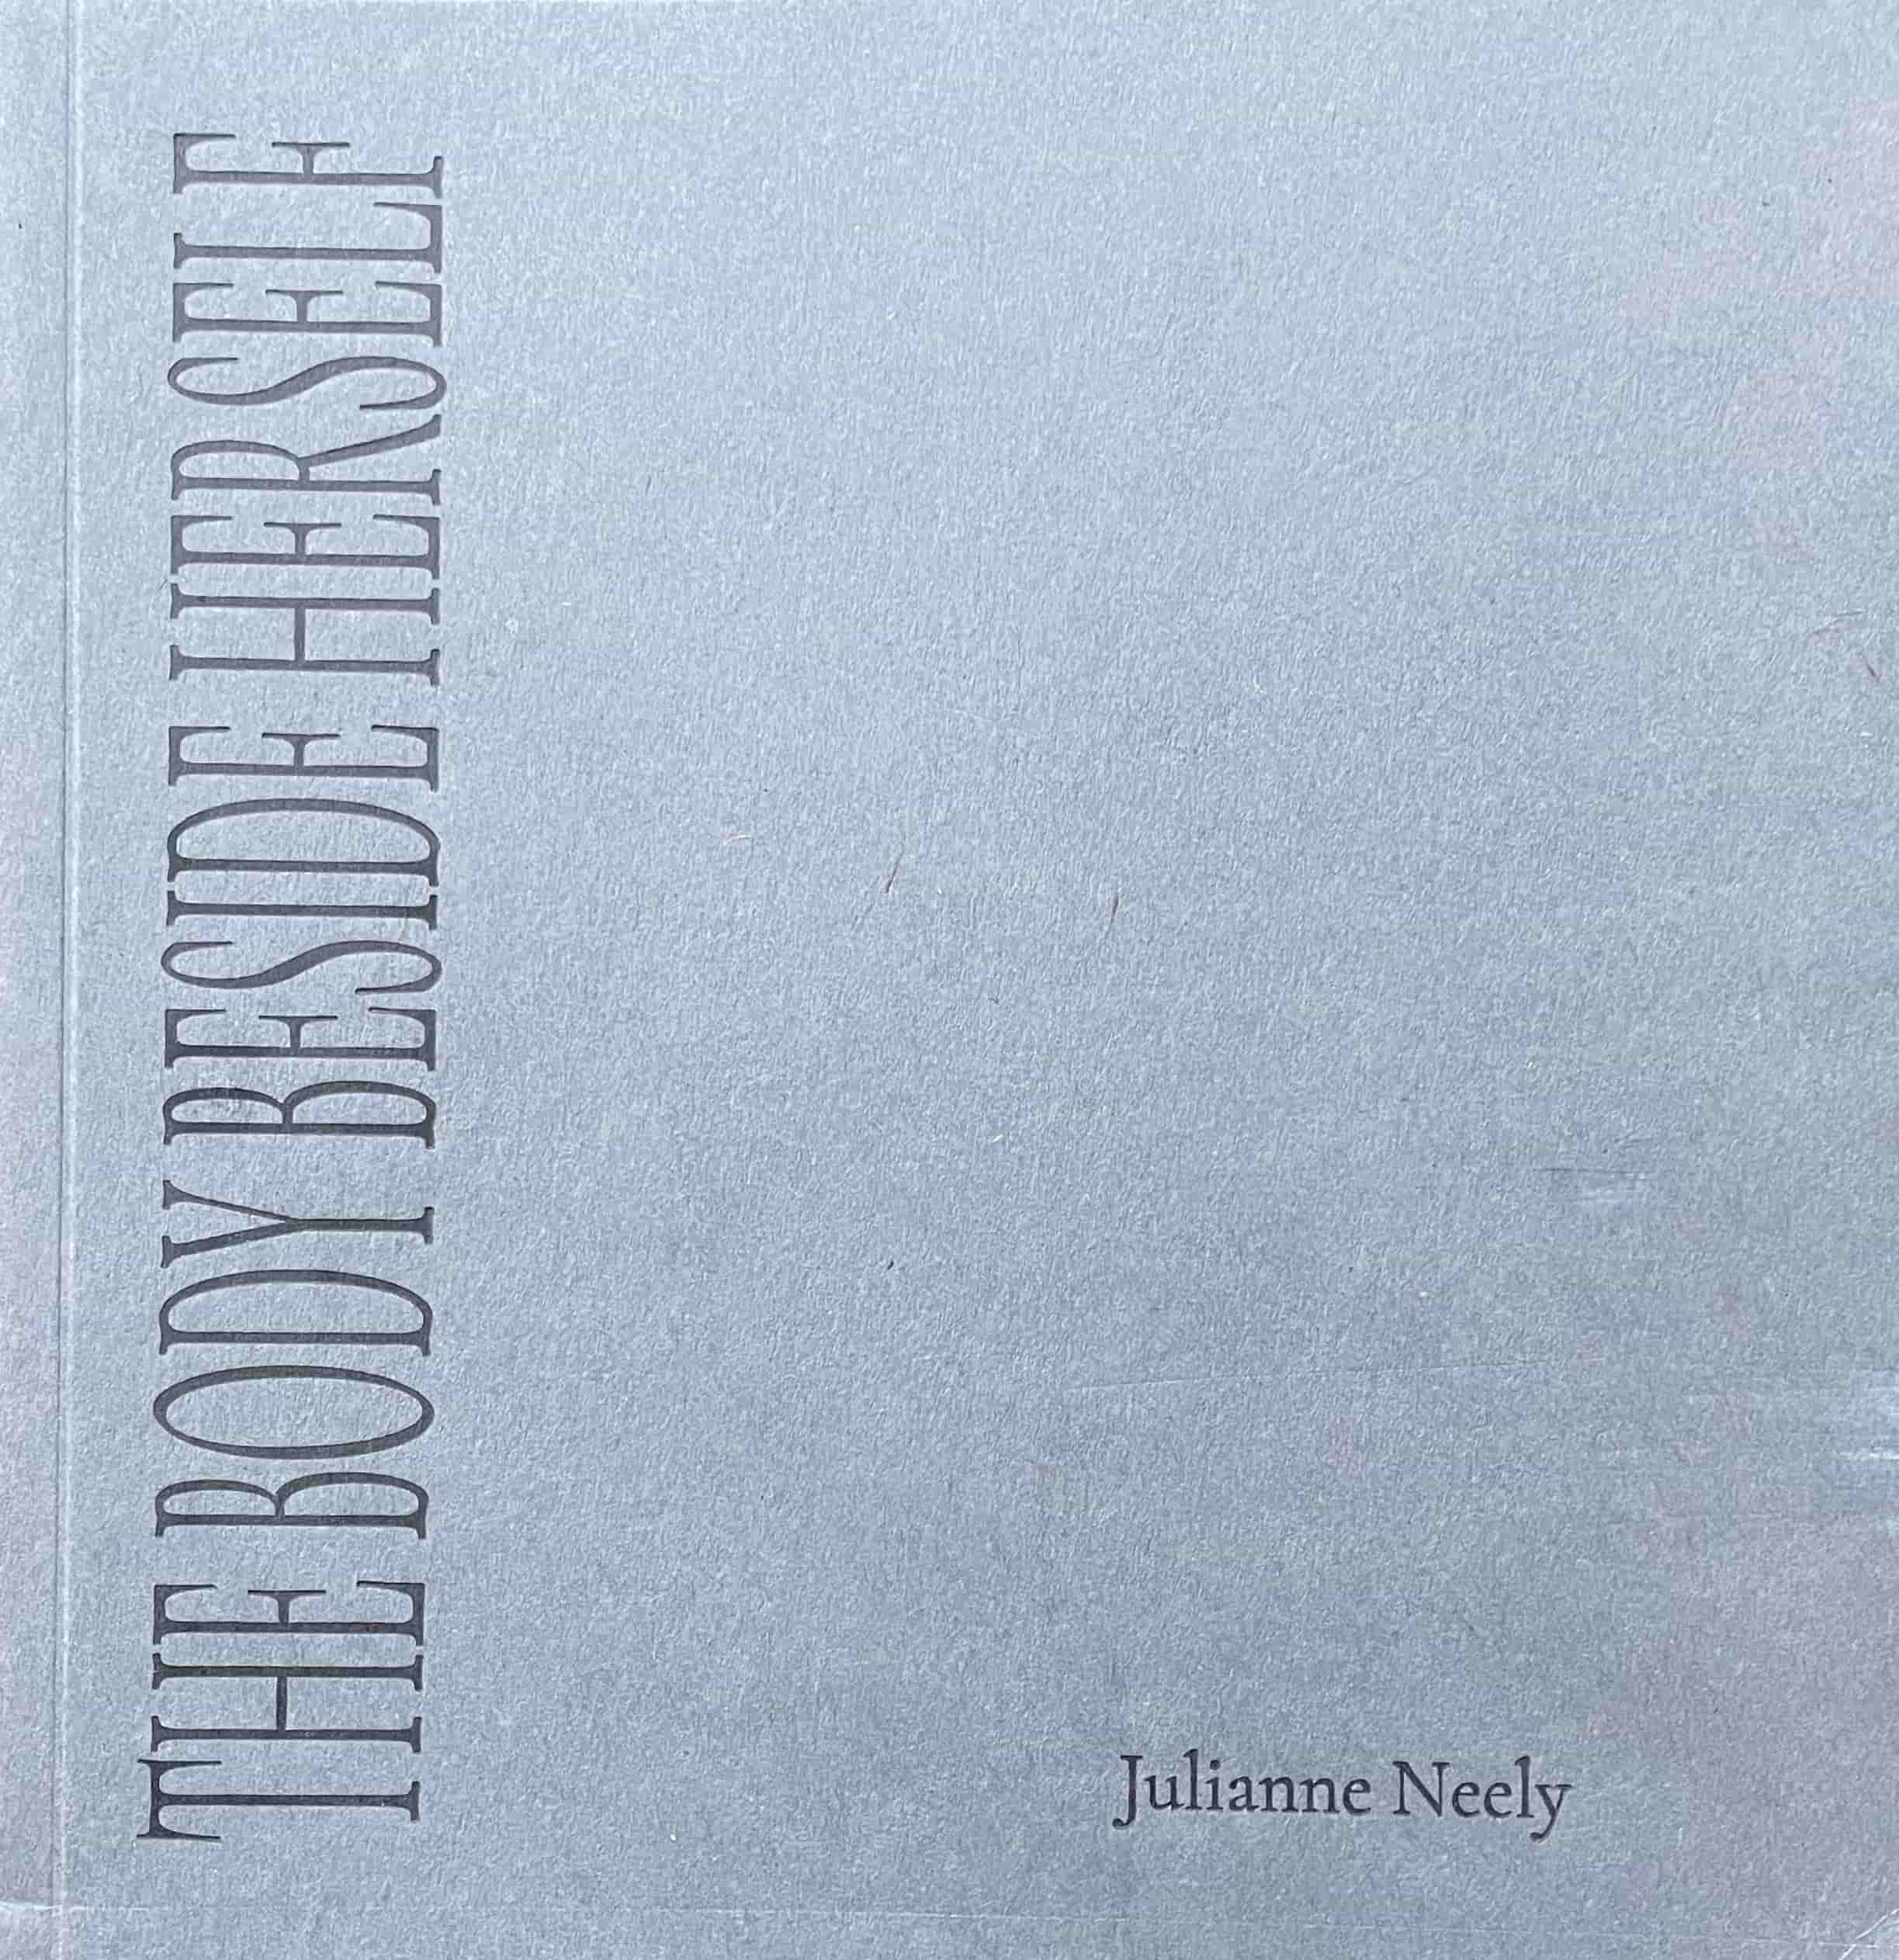 The Body Beside Herself-Julianne Neely-min